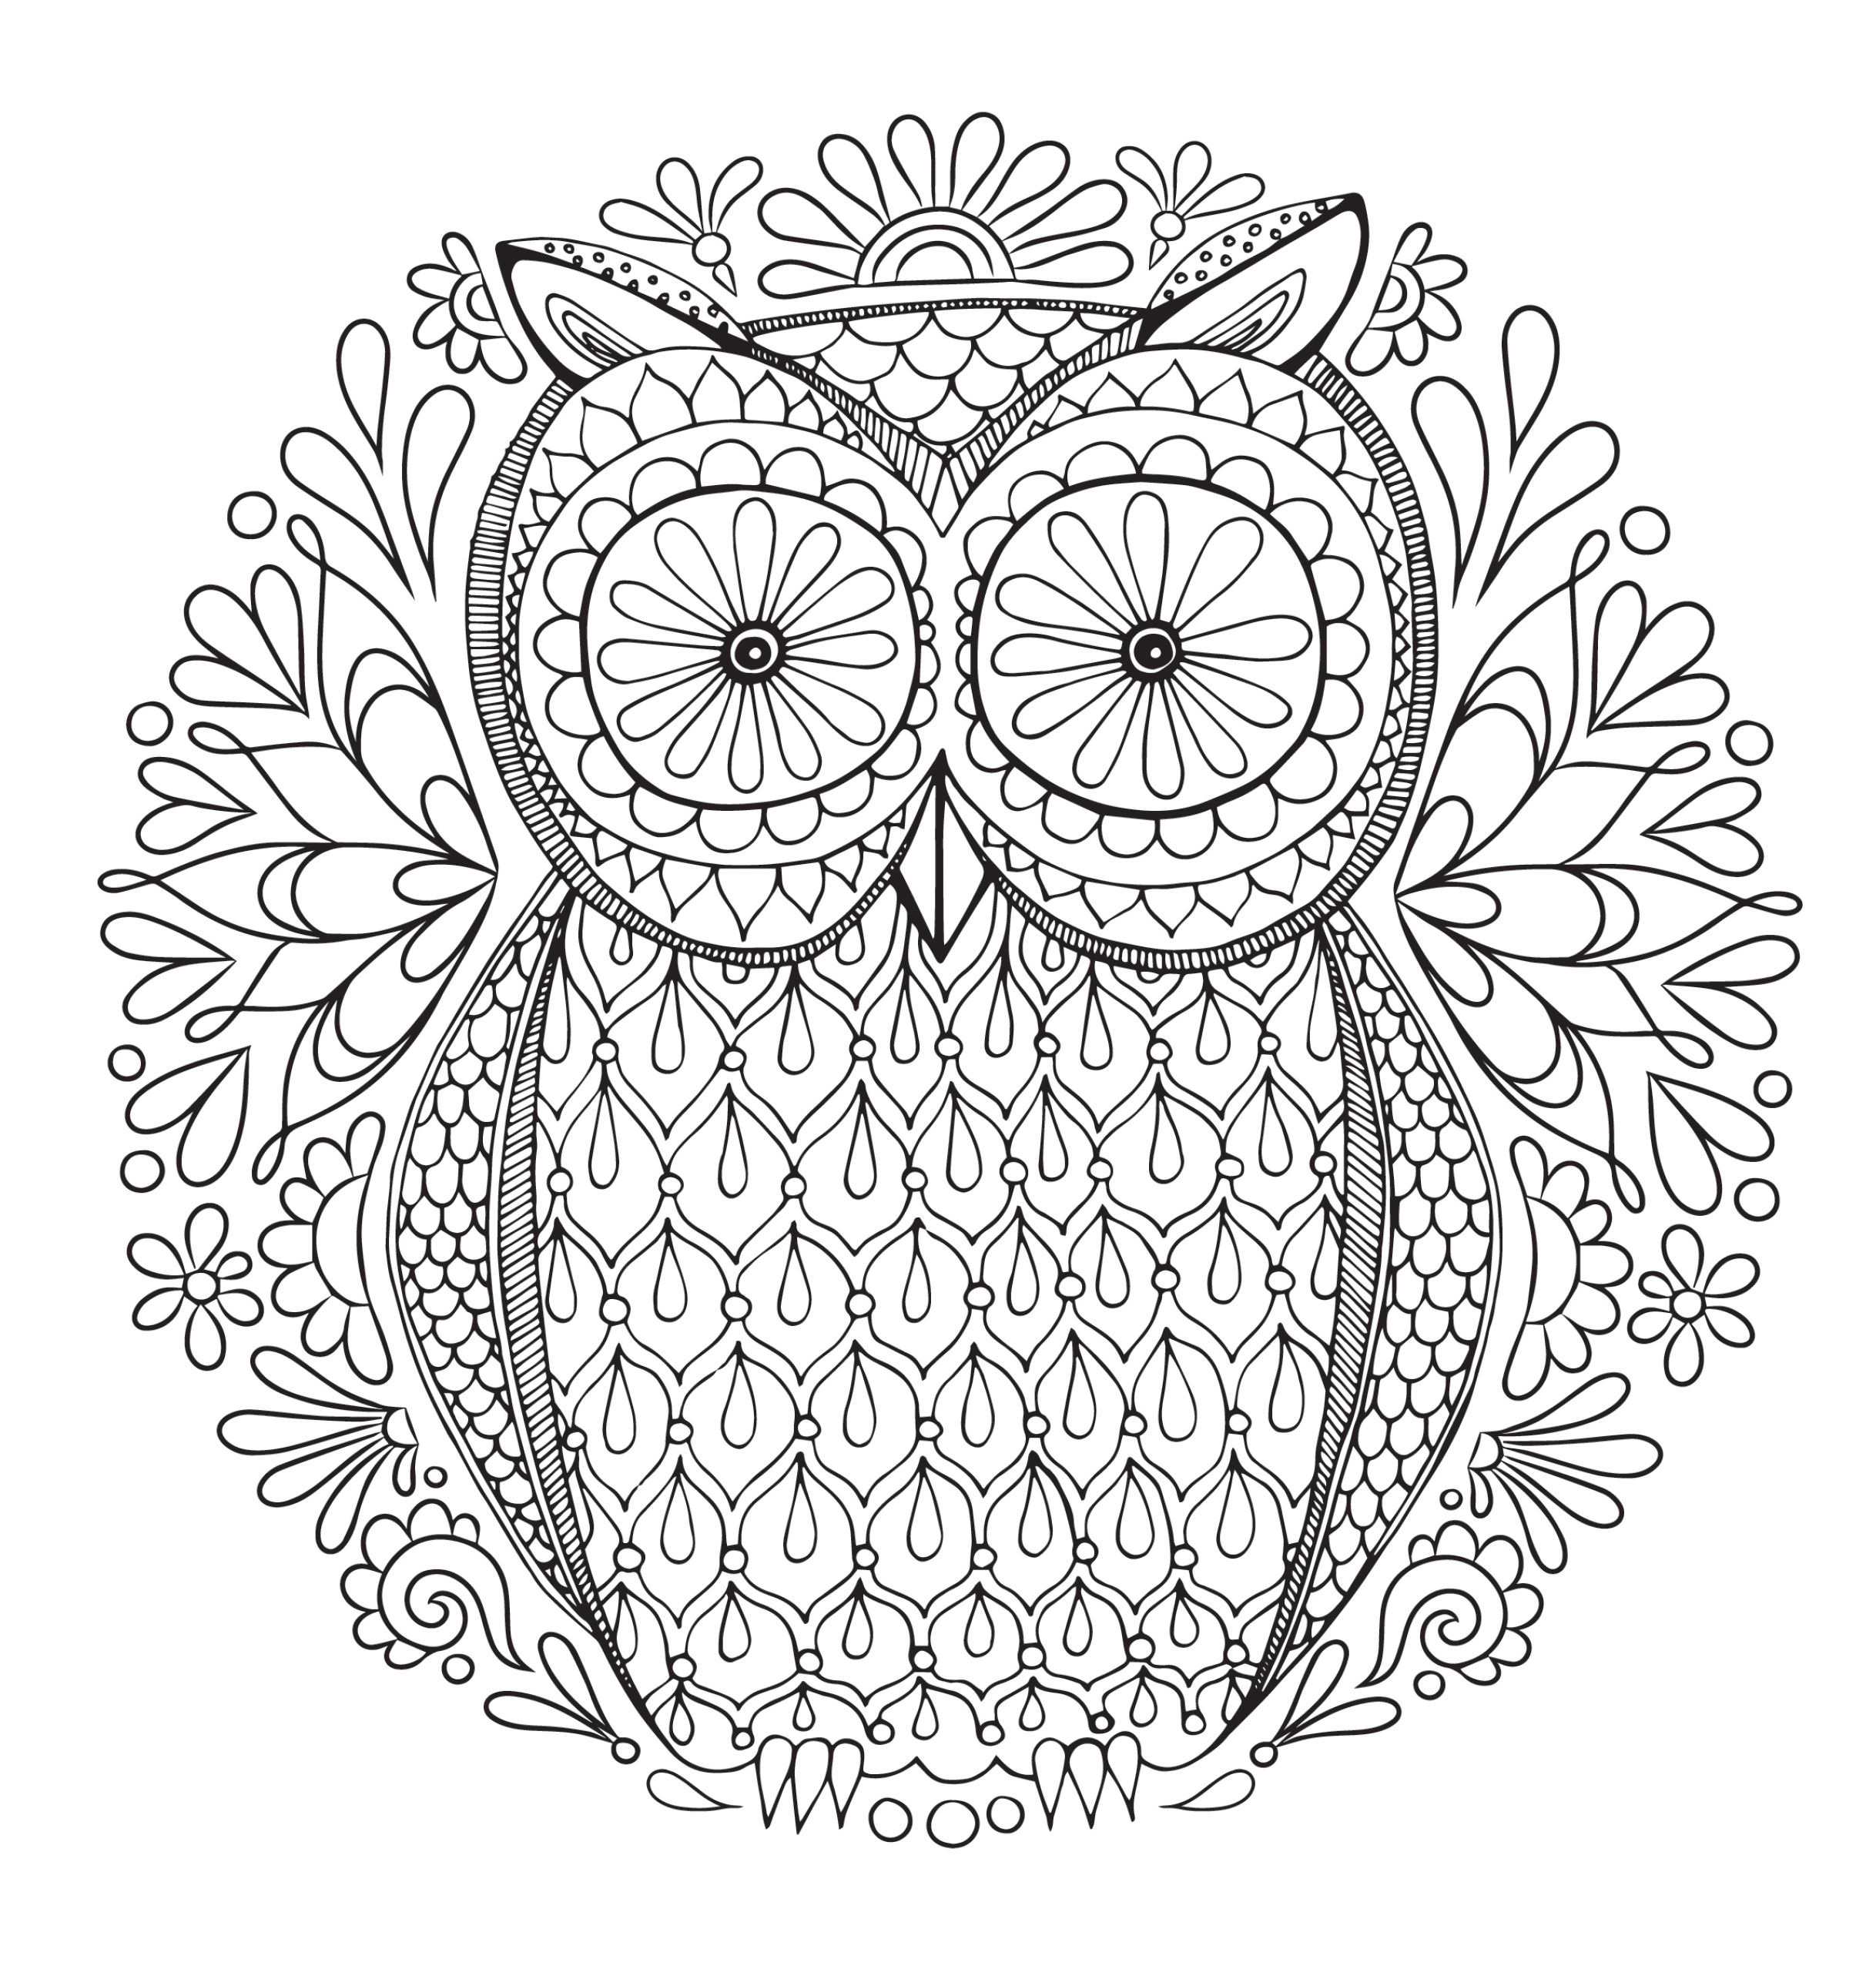 Free Printable Coloring Pages for Adults